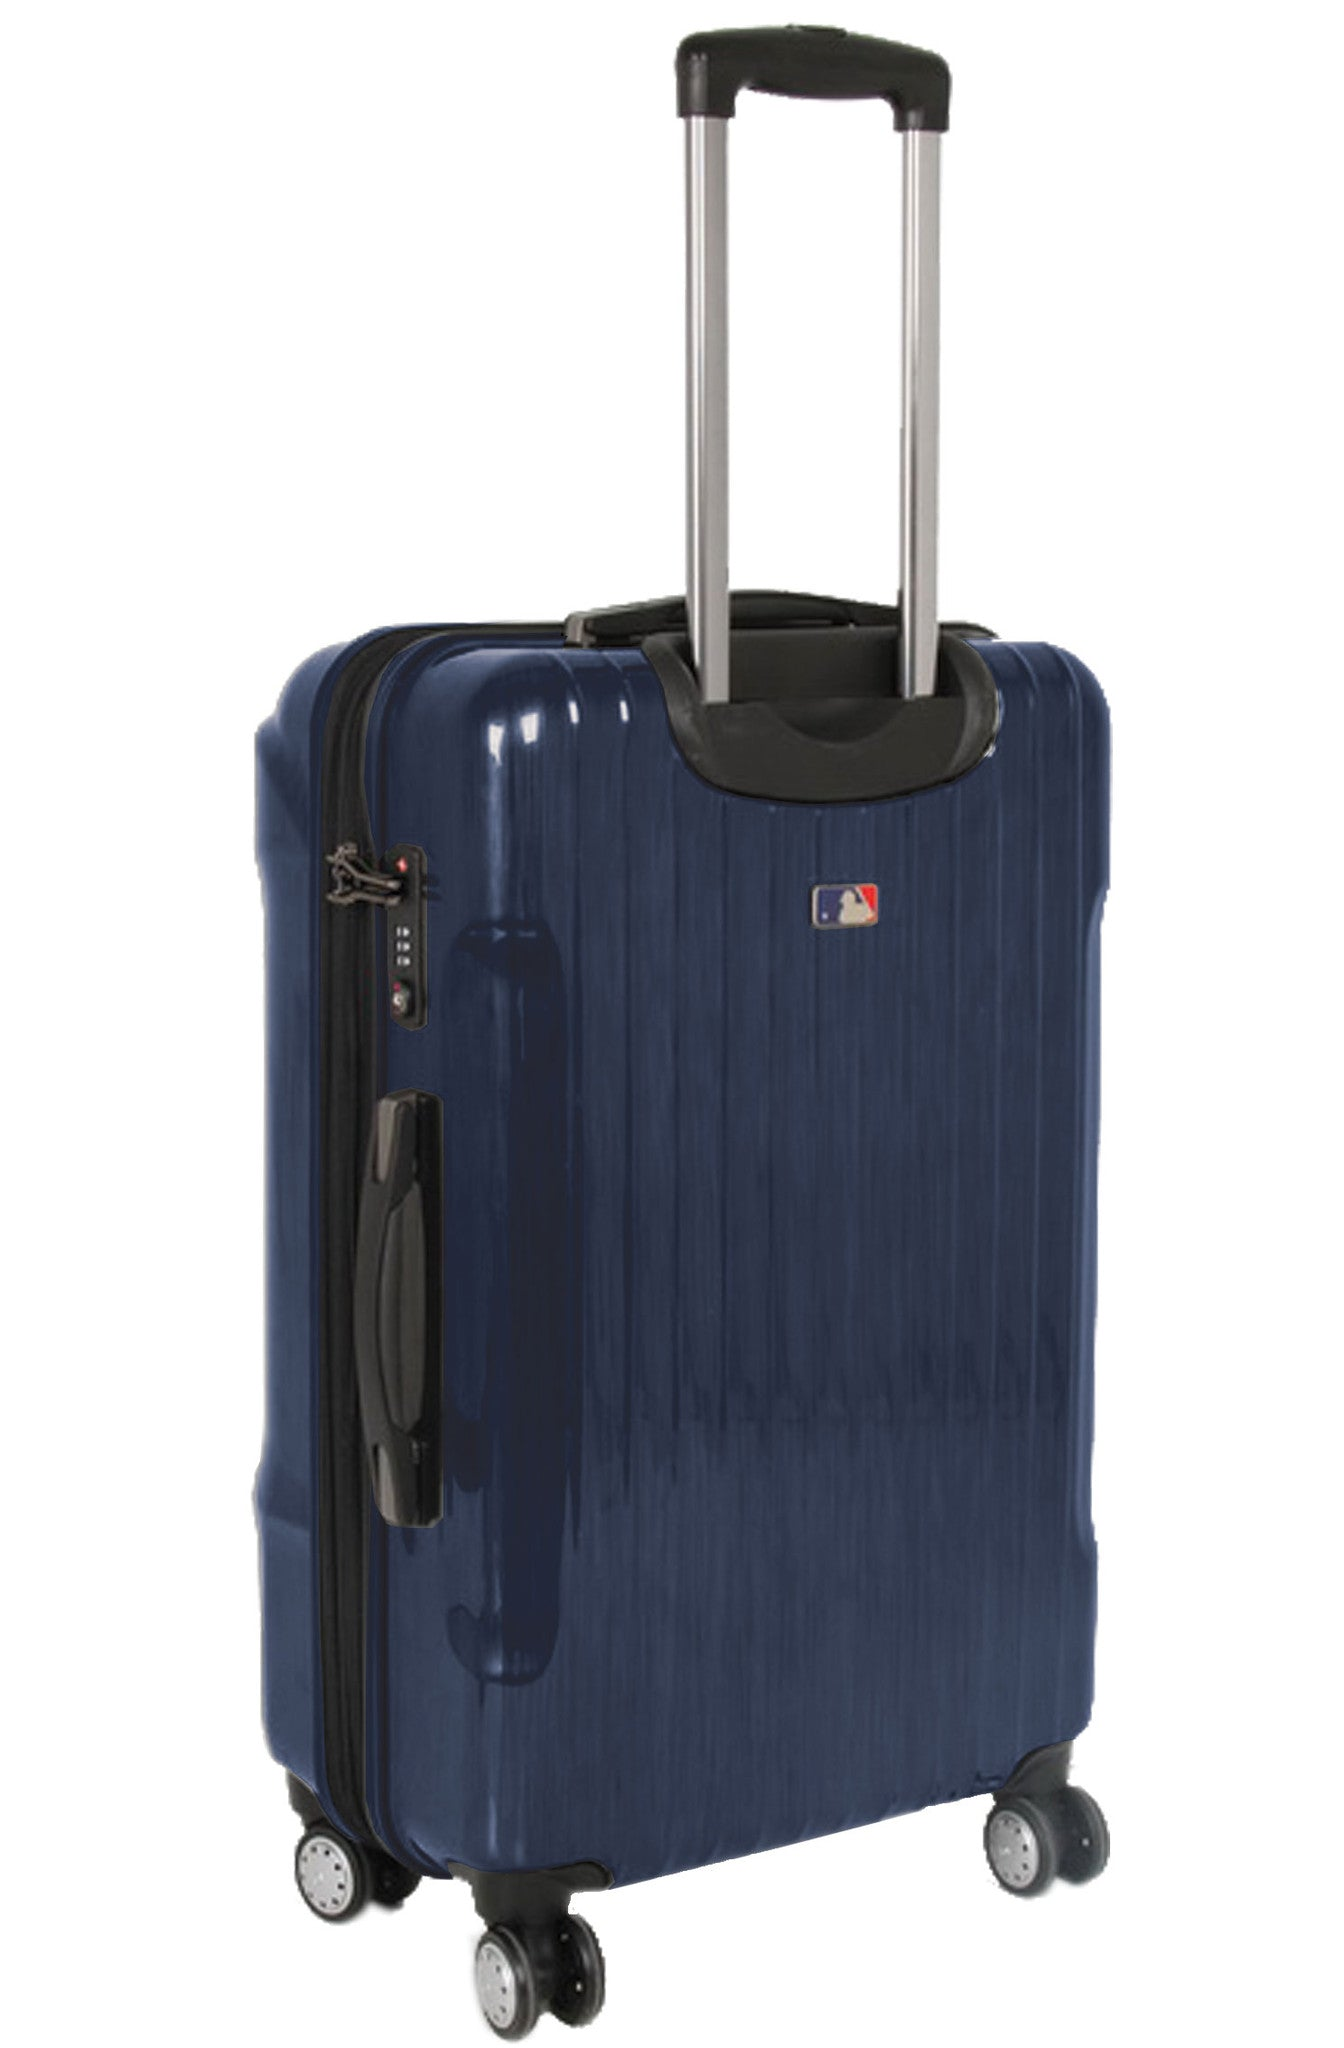 "New York Yankees, 19"" and 26"" Premium Molded Luggage Set by Kaybull #NYY-PCF-SET - OBM Distribution, Inc."